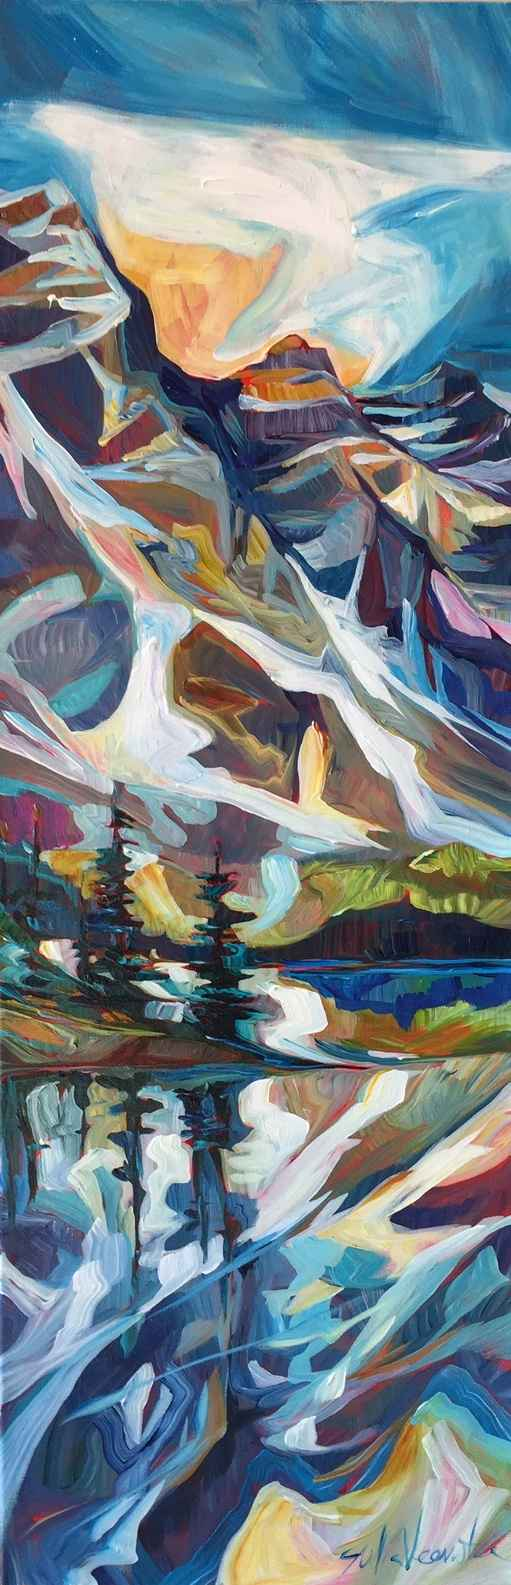 A Slice of Moraine by  Julia Veenstra - Masterpiece Online